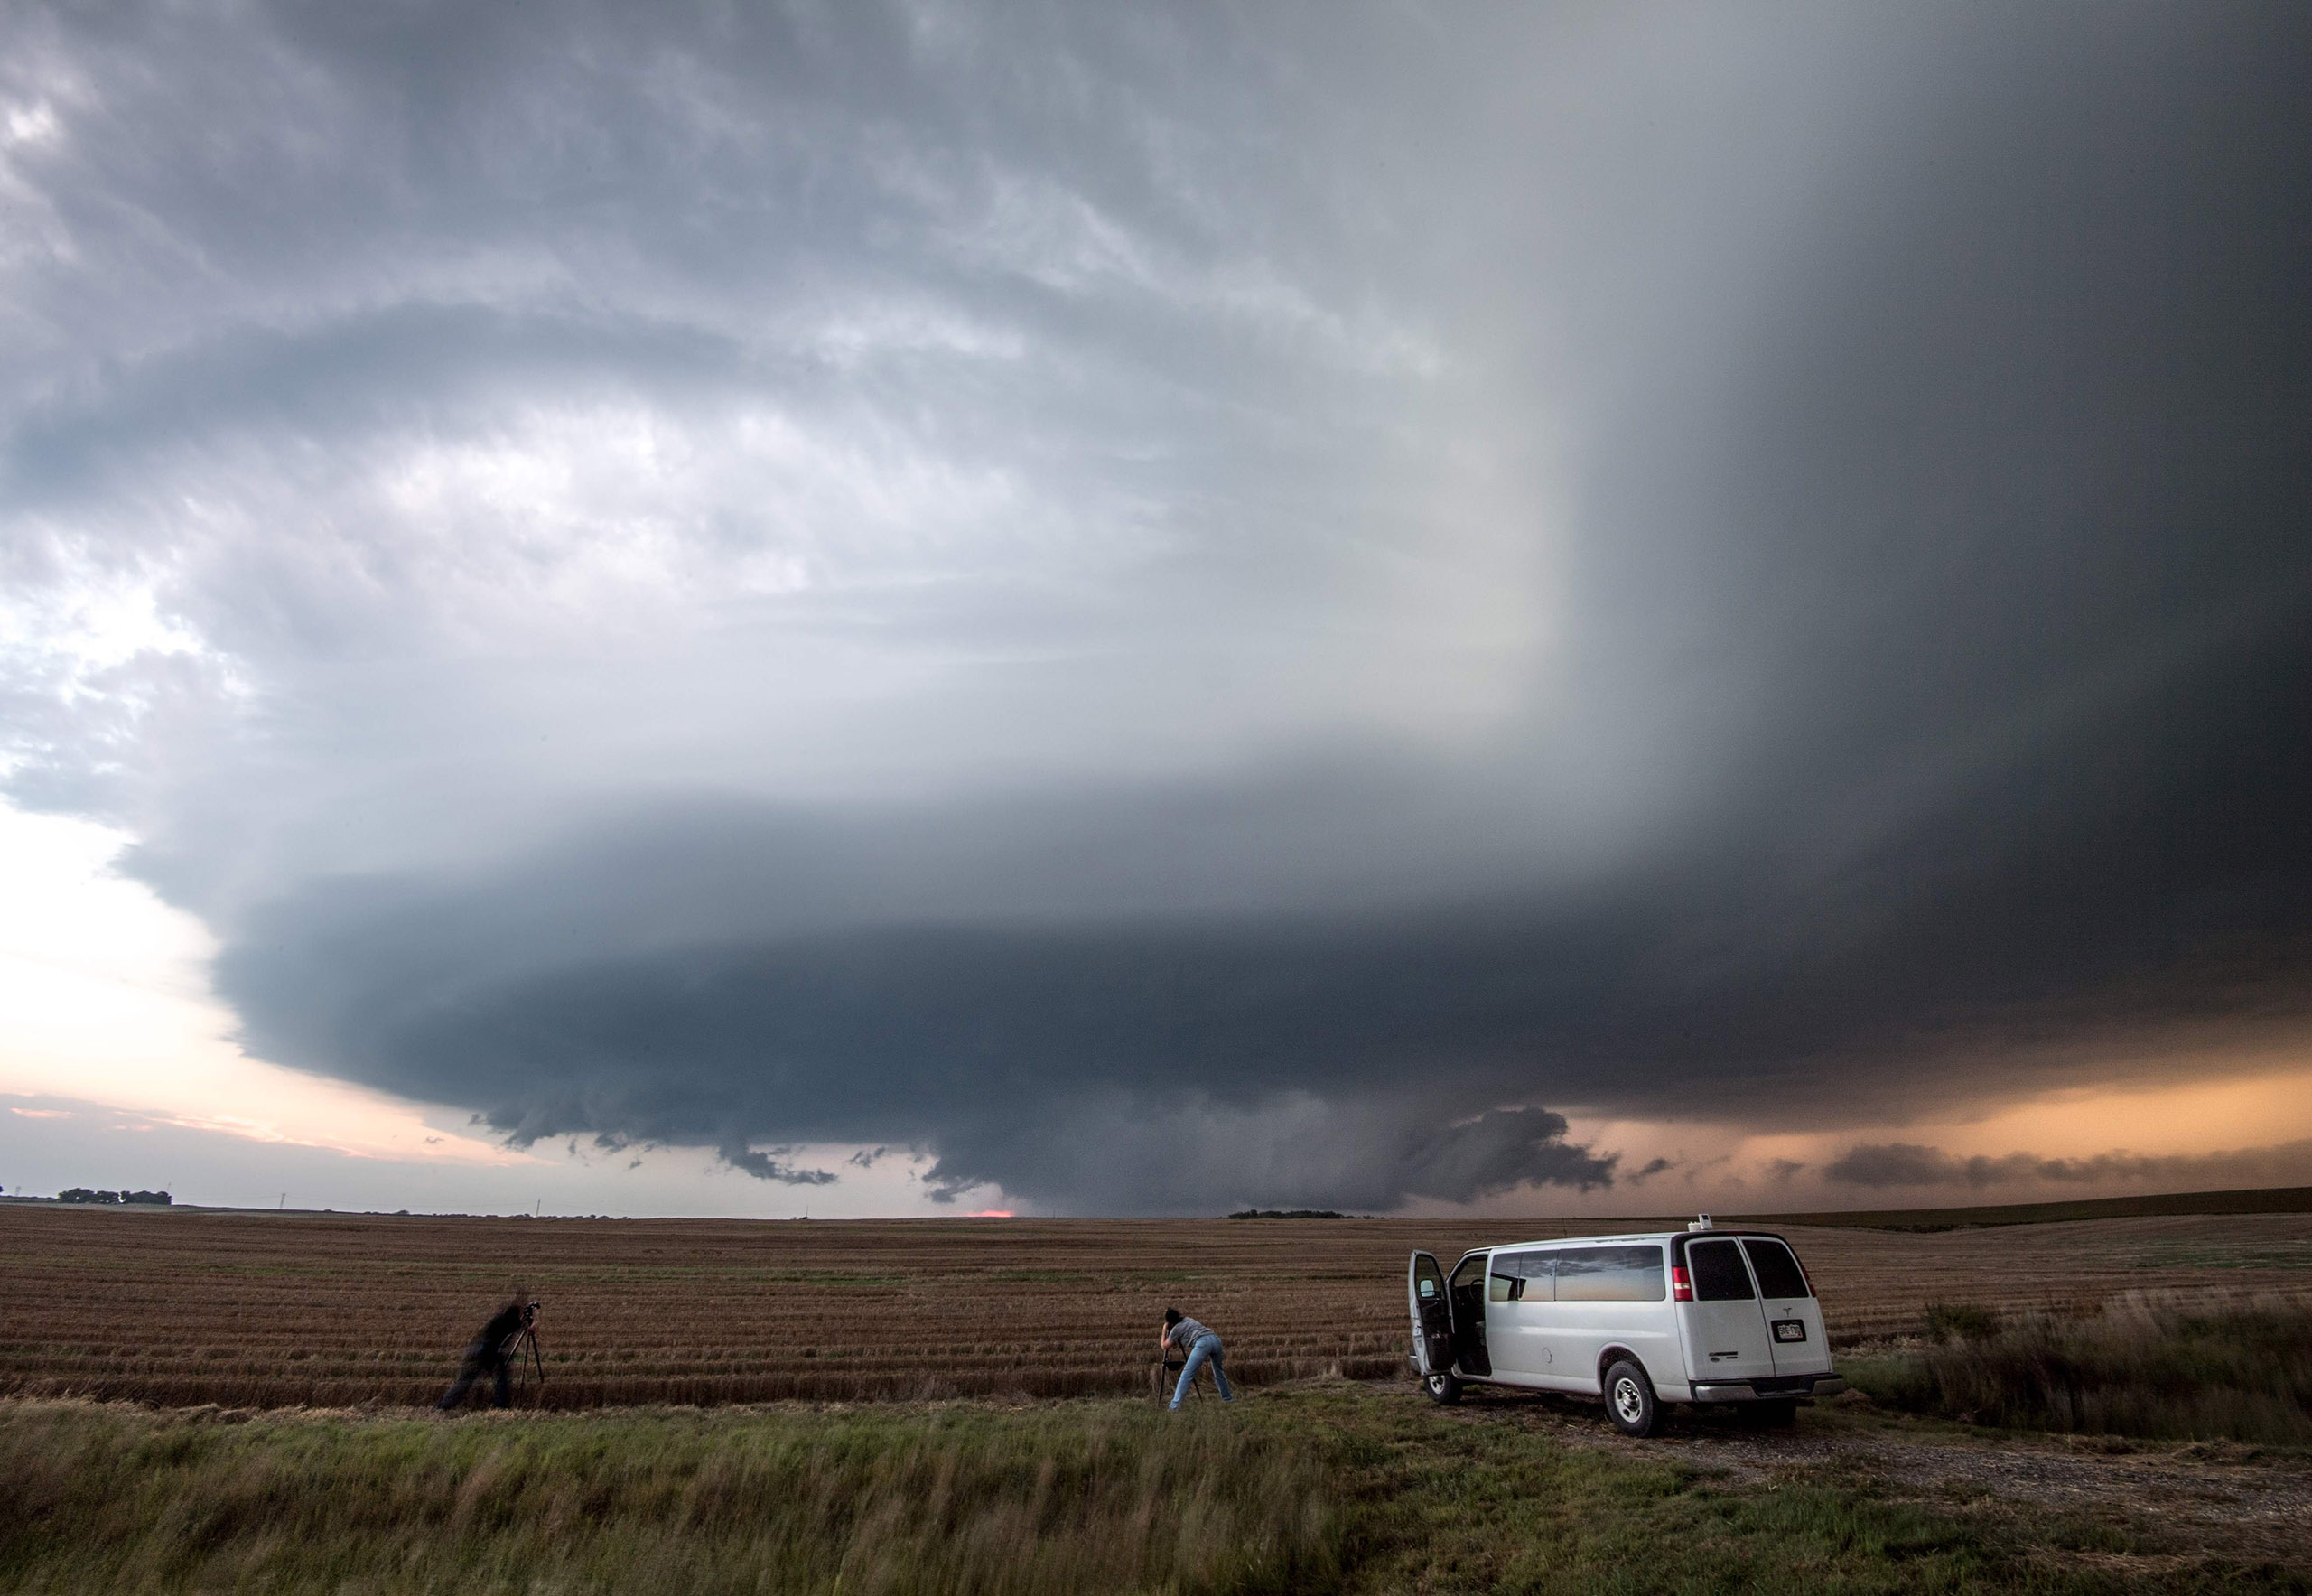 Storm chasing photographers underneath a rotating supercell storm system in Maxwell, Nebraska on Sept. 3, 2016.